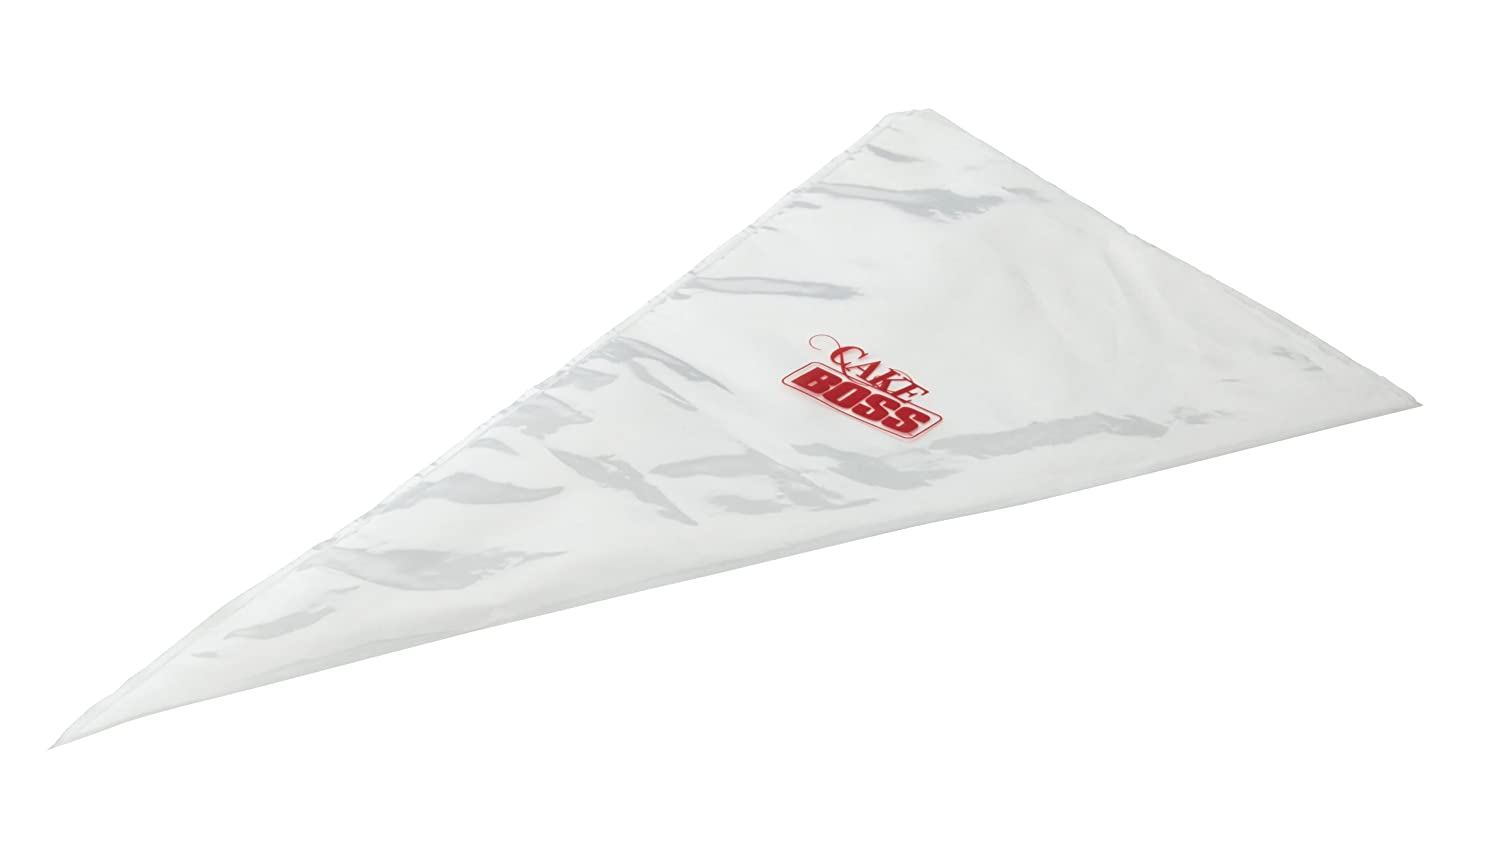 Cake Boss 50 Count Disposable Plastic Icing Bags, 14-Inch